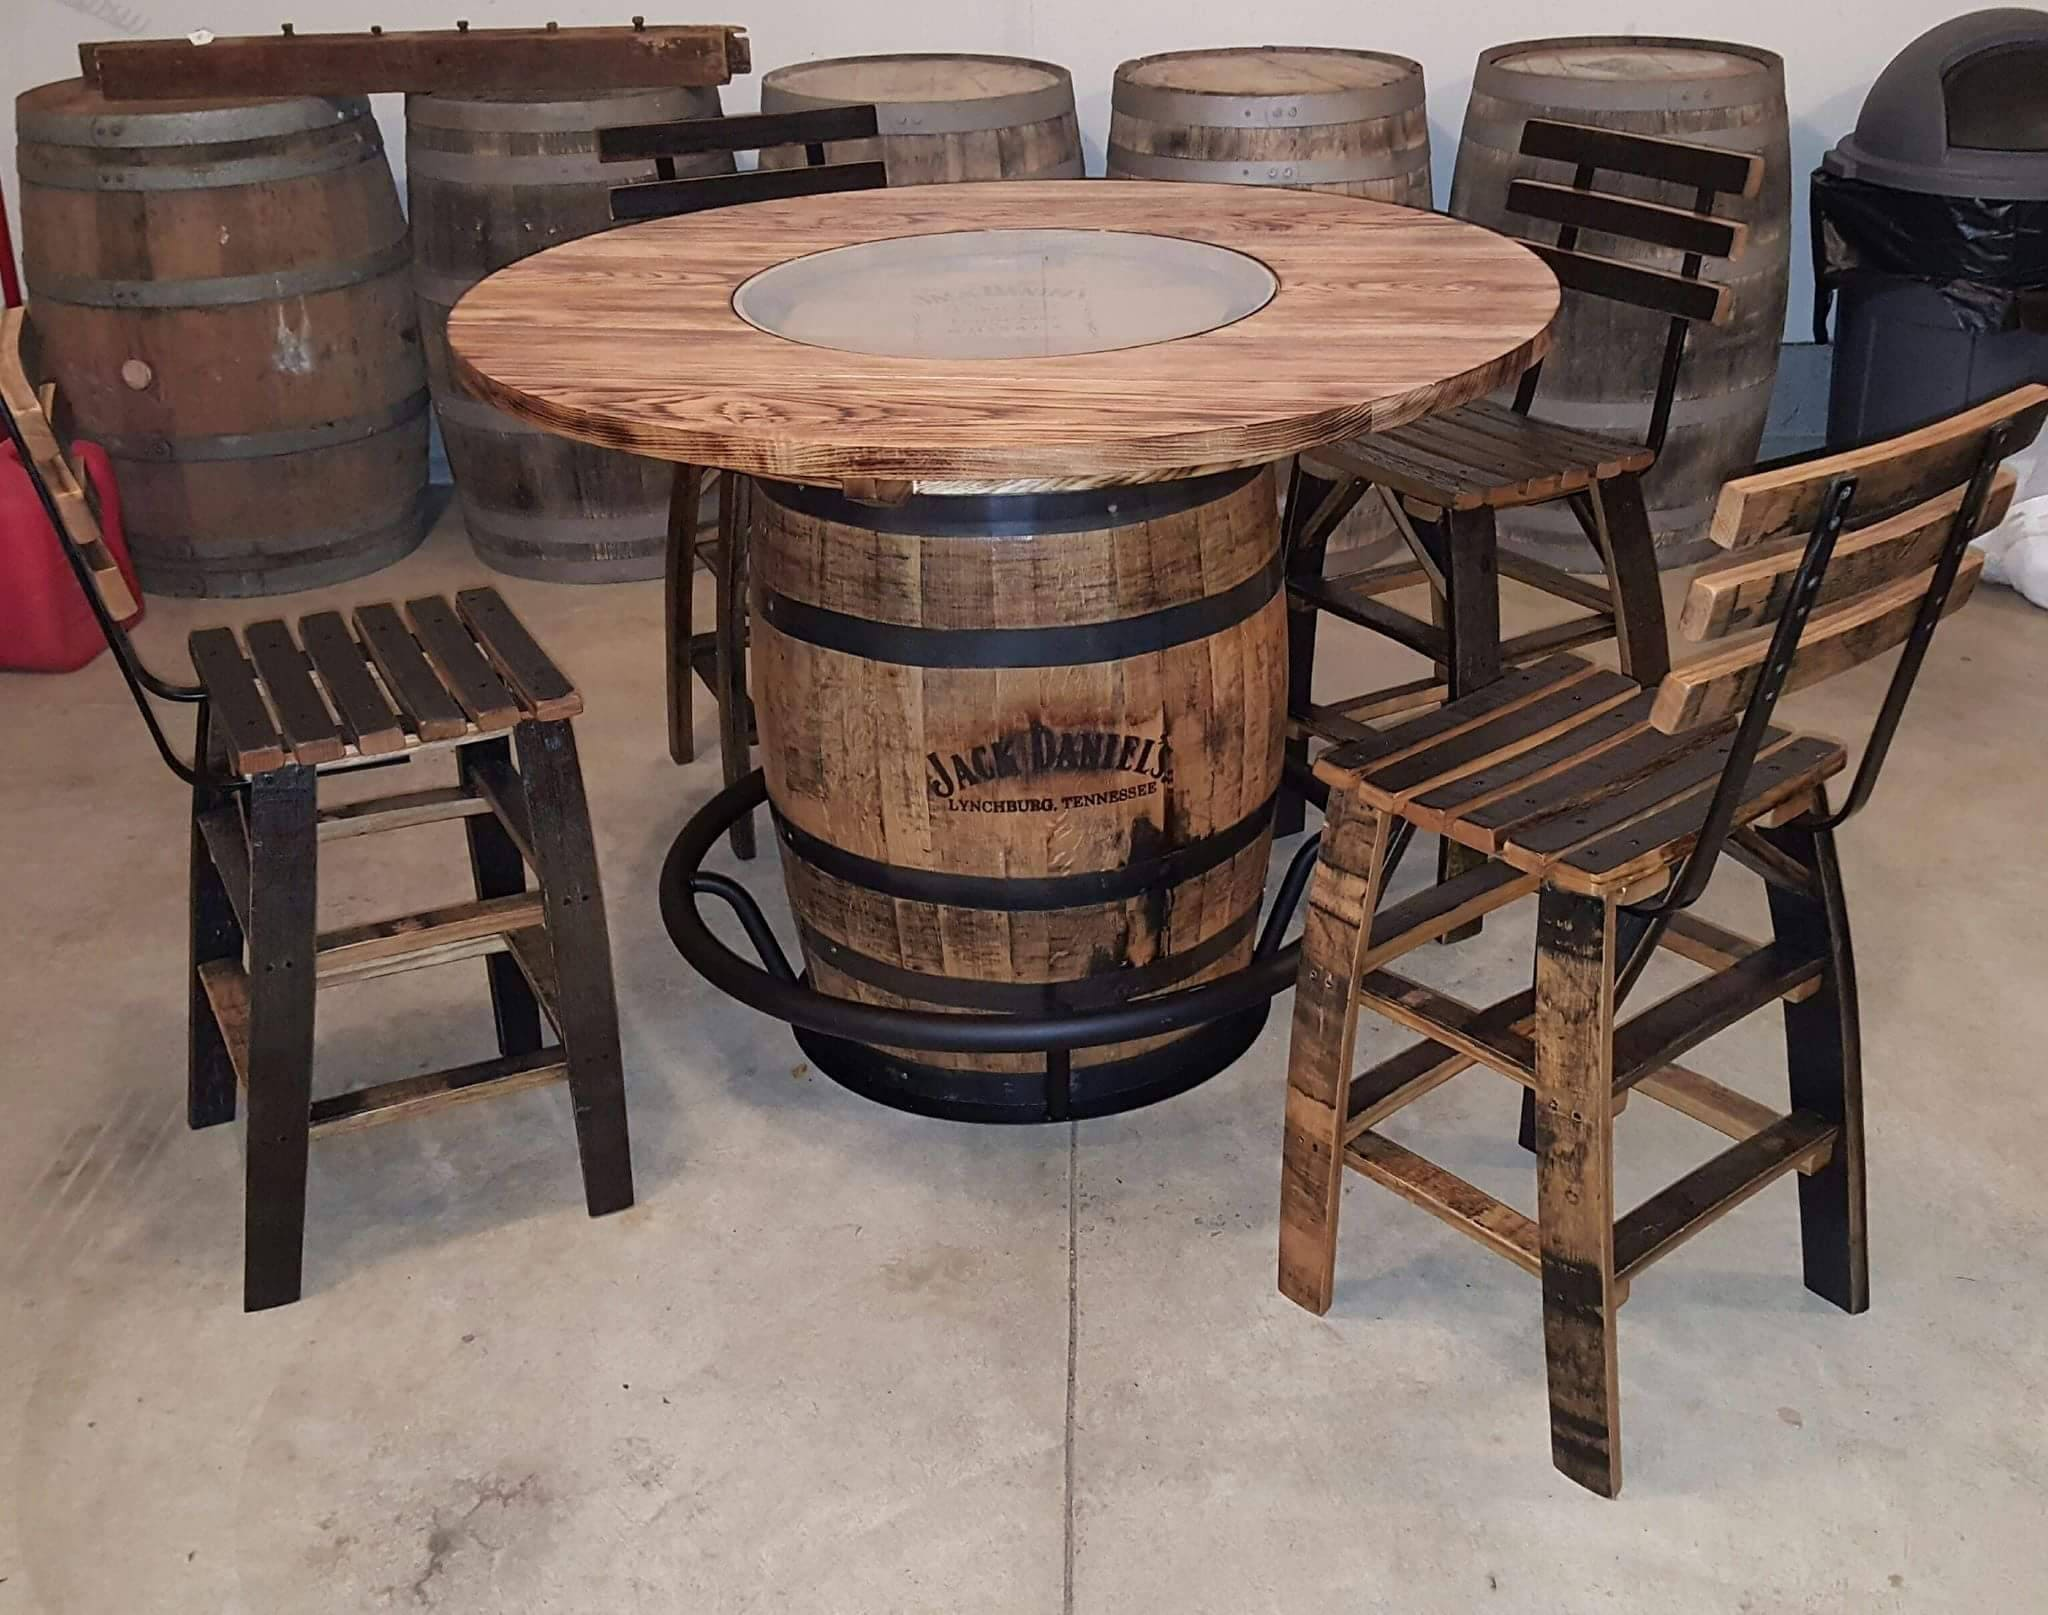 jack daniels whiskey barrel table with 4 stave chairs and. Black Bedroom Furniture Sets. Home Design Ideas